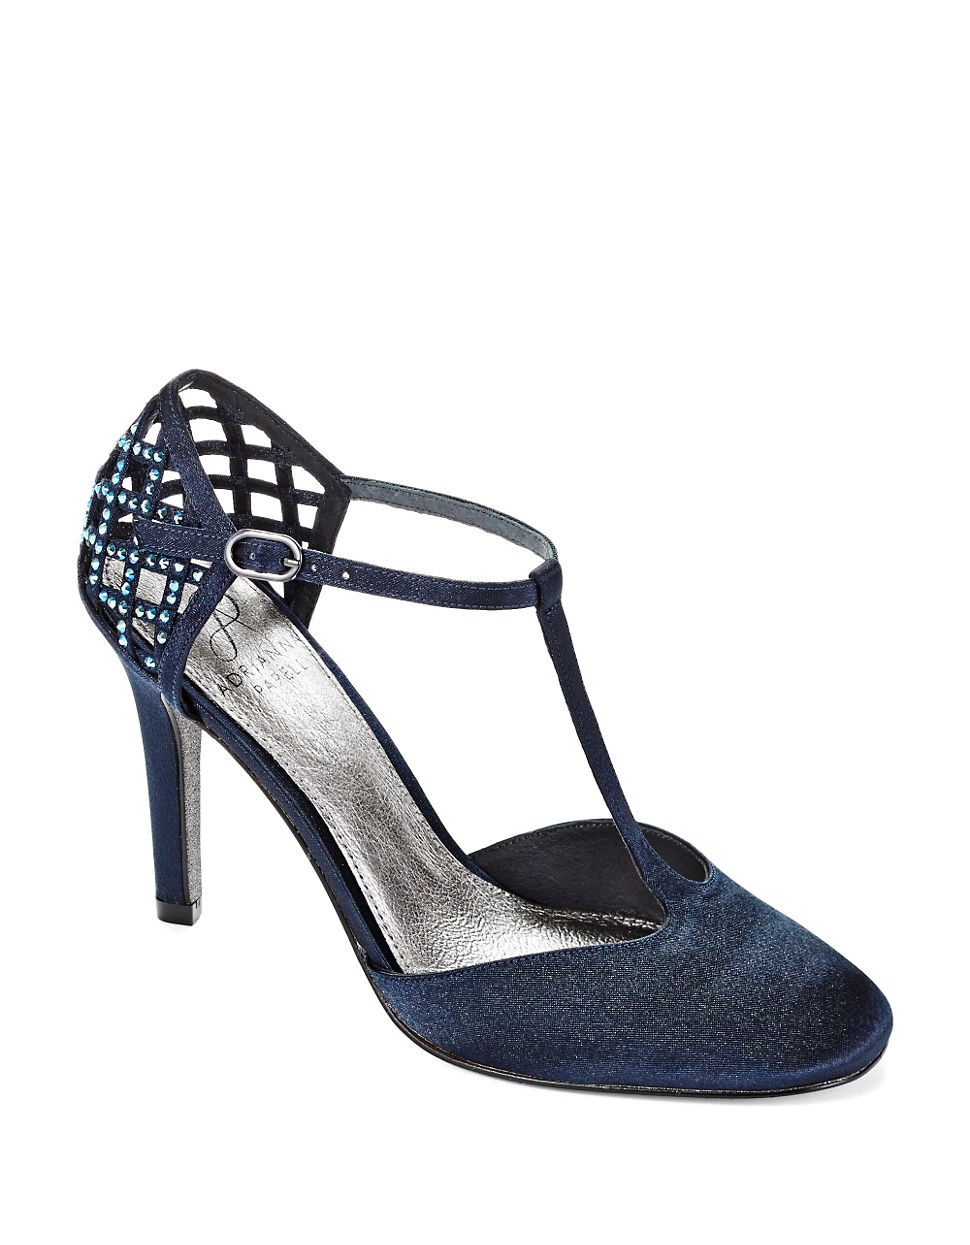 adrianna papell janice t strap pumps in blue lyst. Black Bedroom Furniture Sets. Home Design Ideas